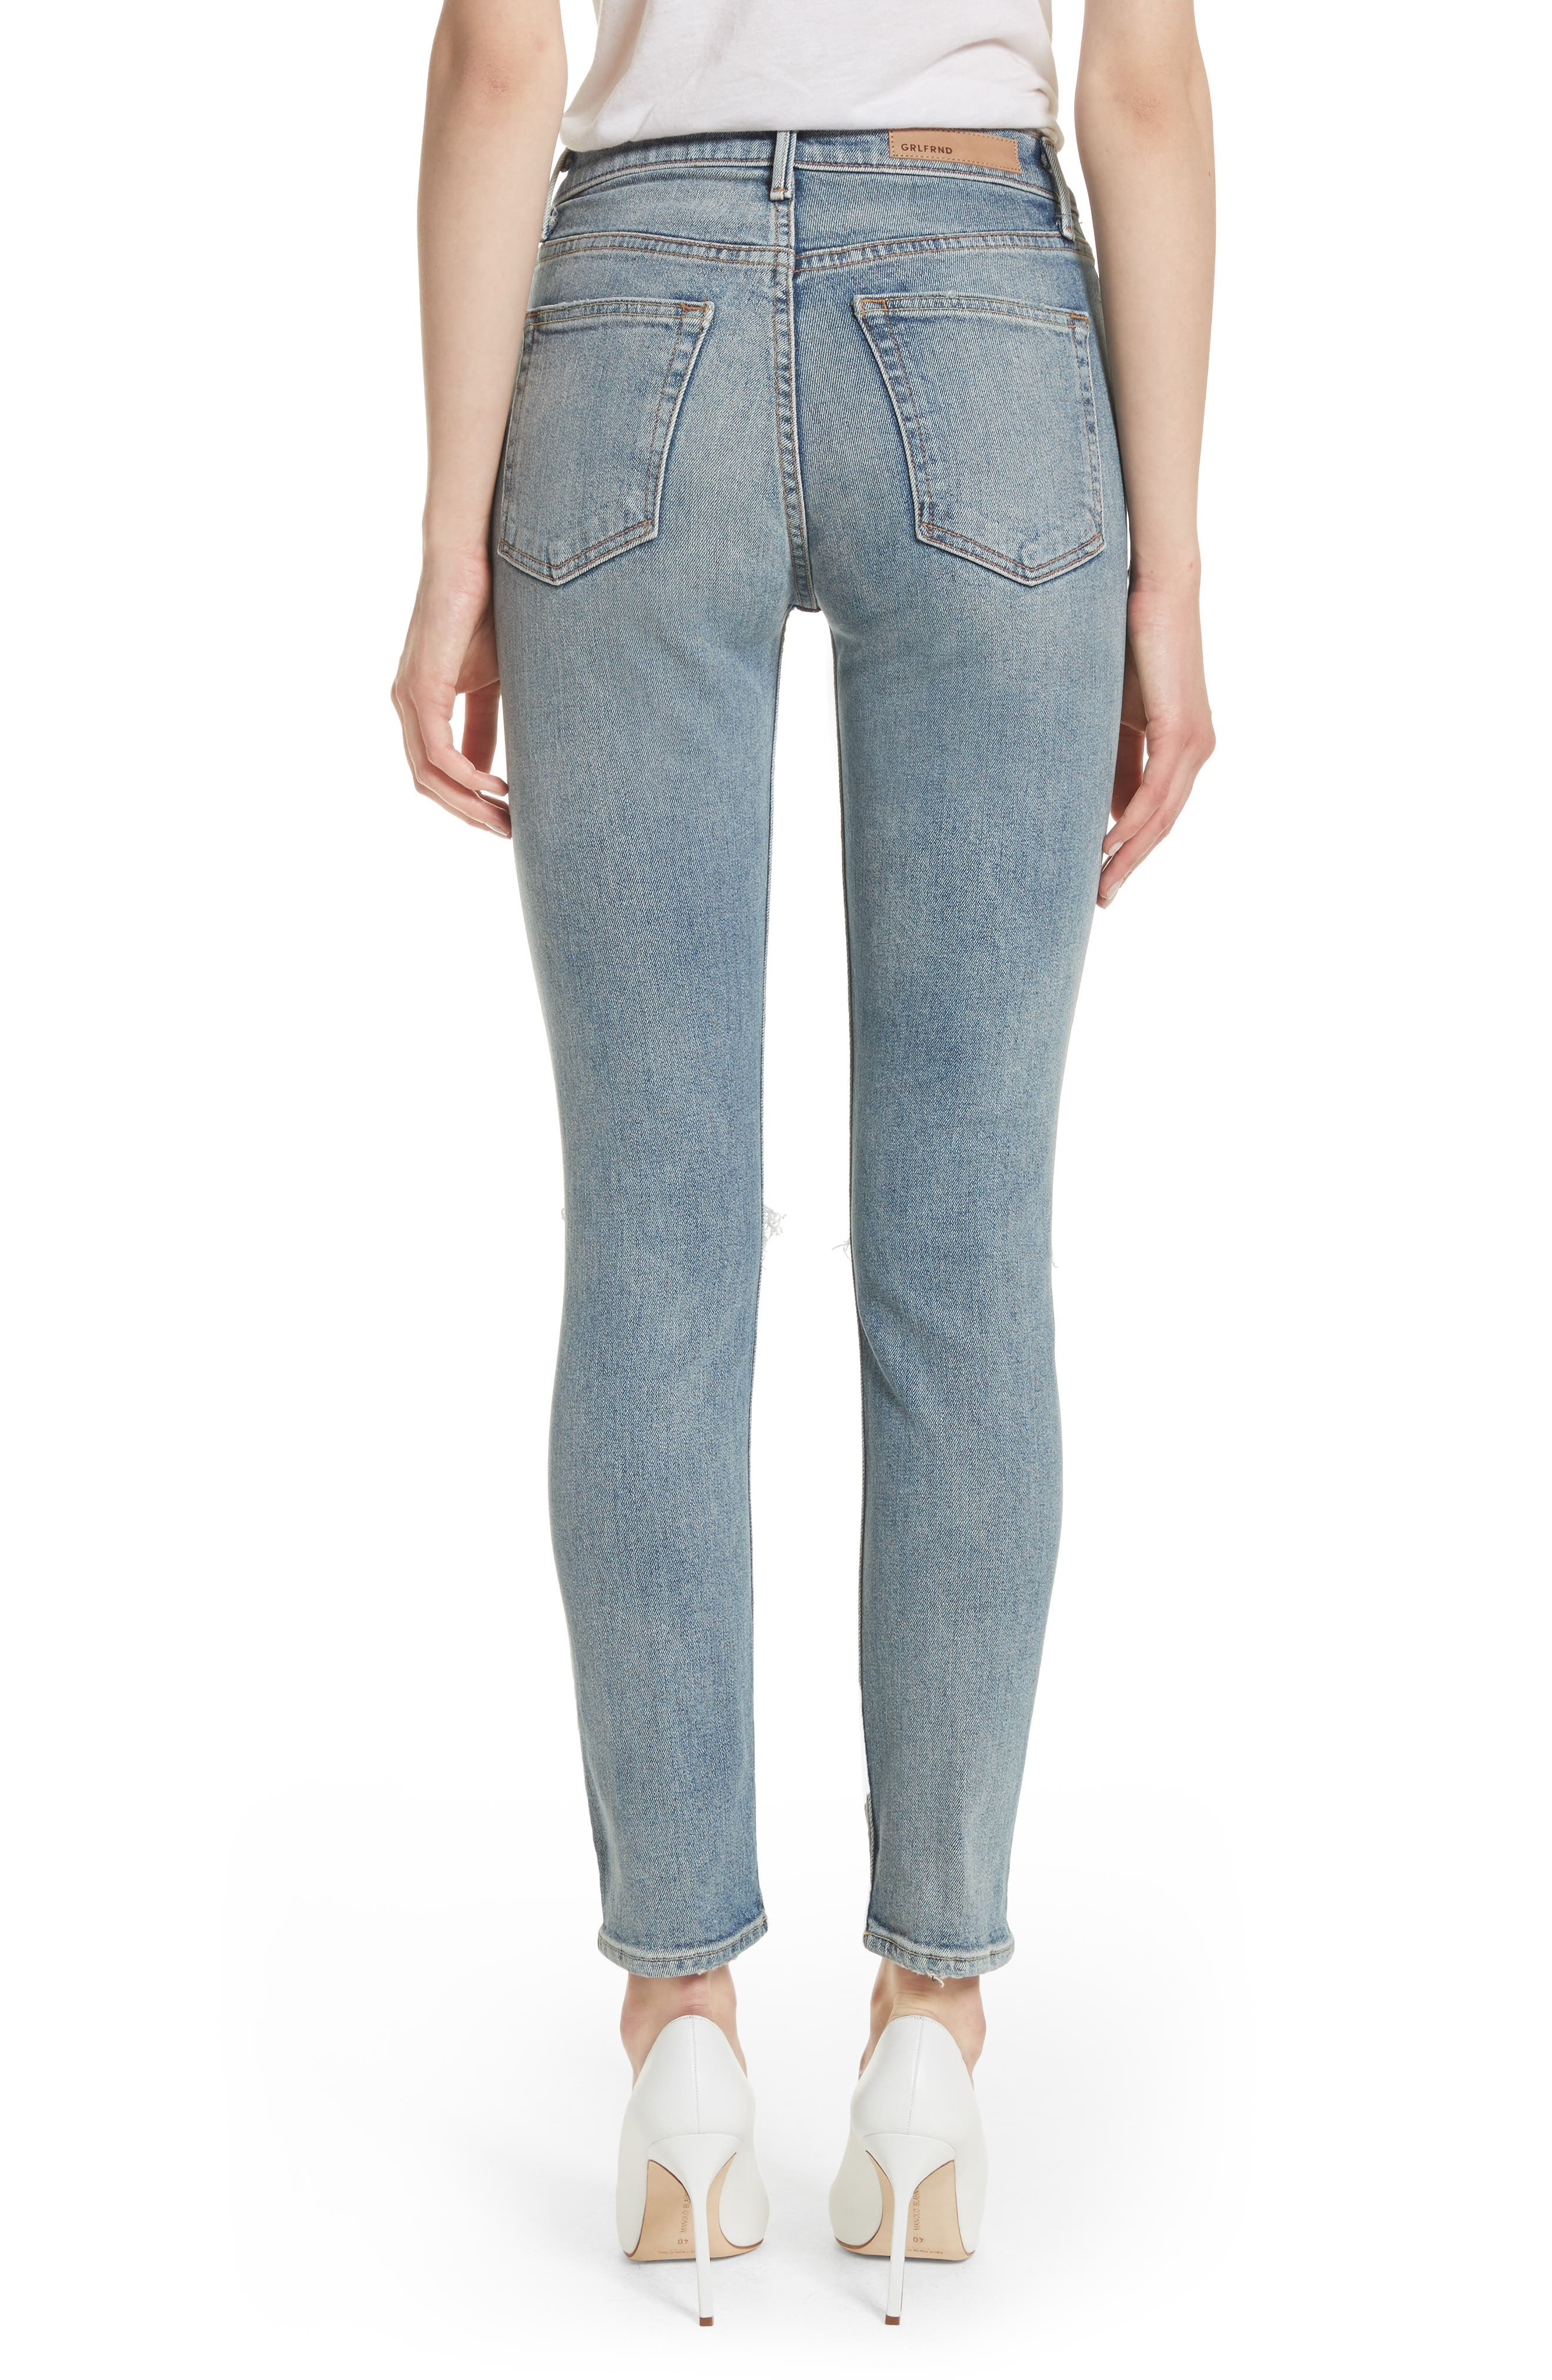 Karolina High Waist Jeans,                             Alternate thumbnail 2, color,                             What Is Life